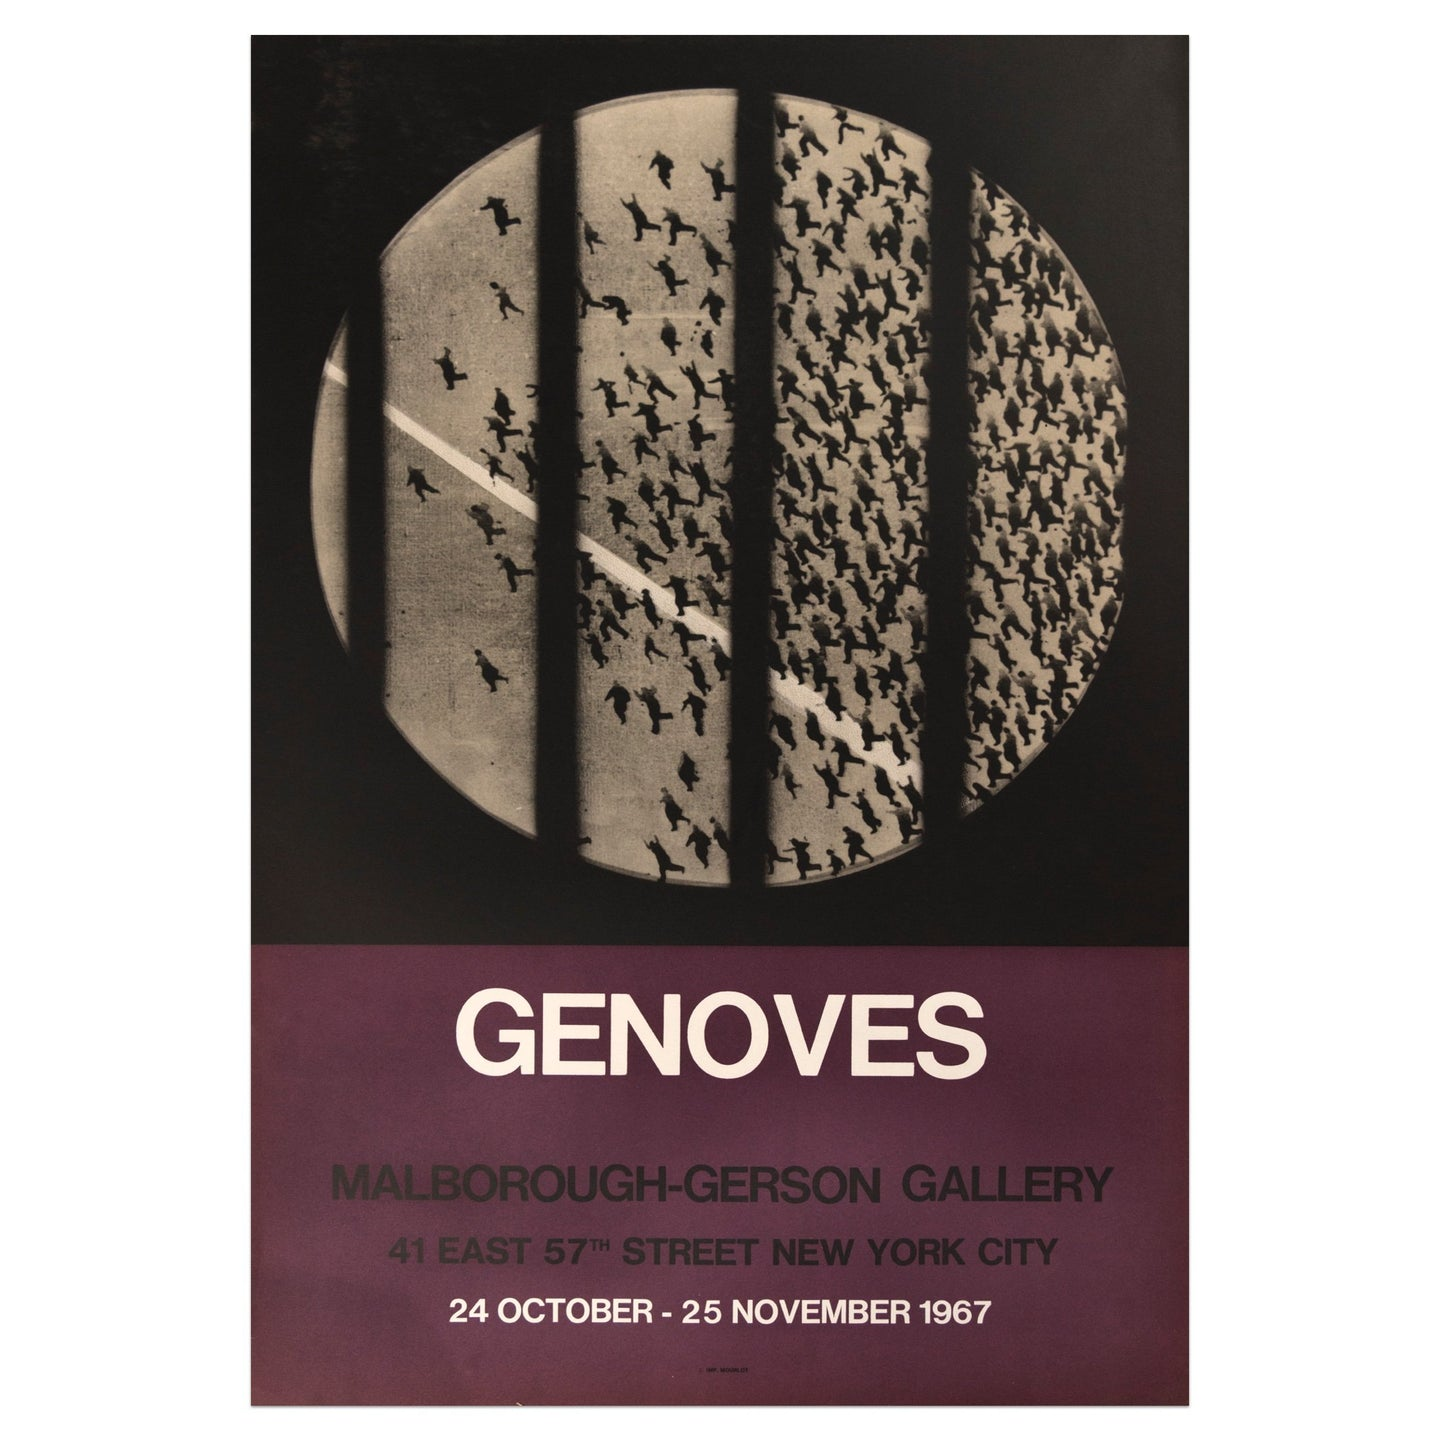 1967 Juan Genoves poster featuring a black and white bird's-eye view of a crowd running in a circular frame, divided by black bars